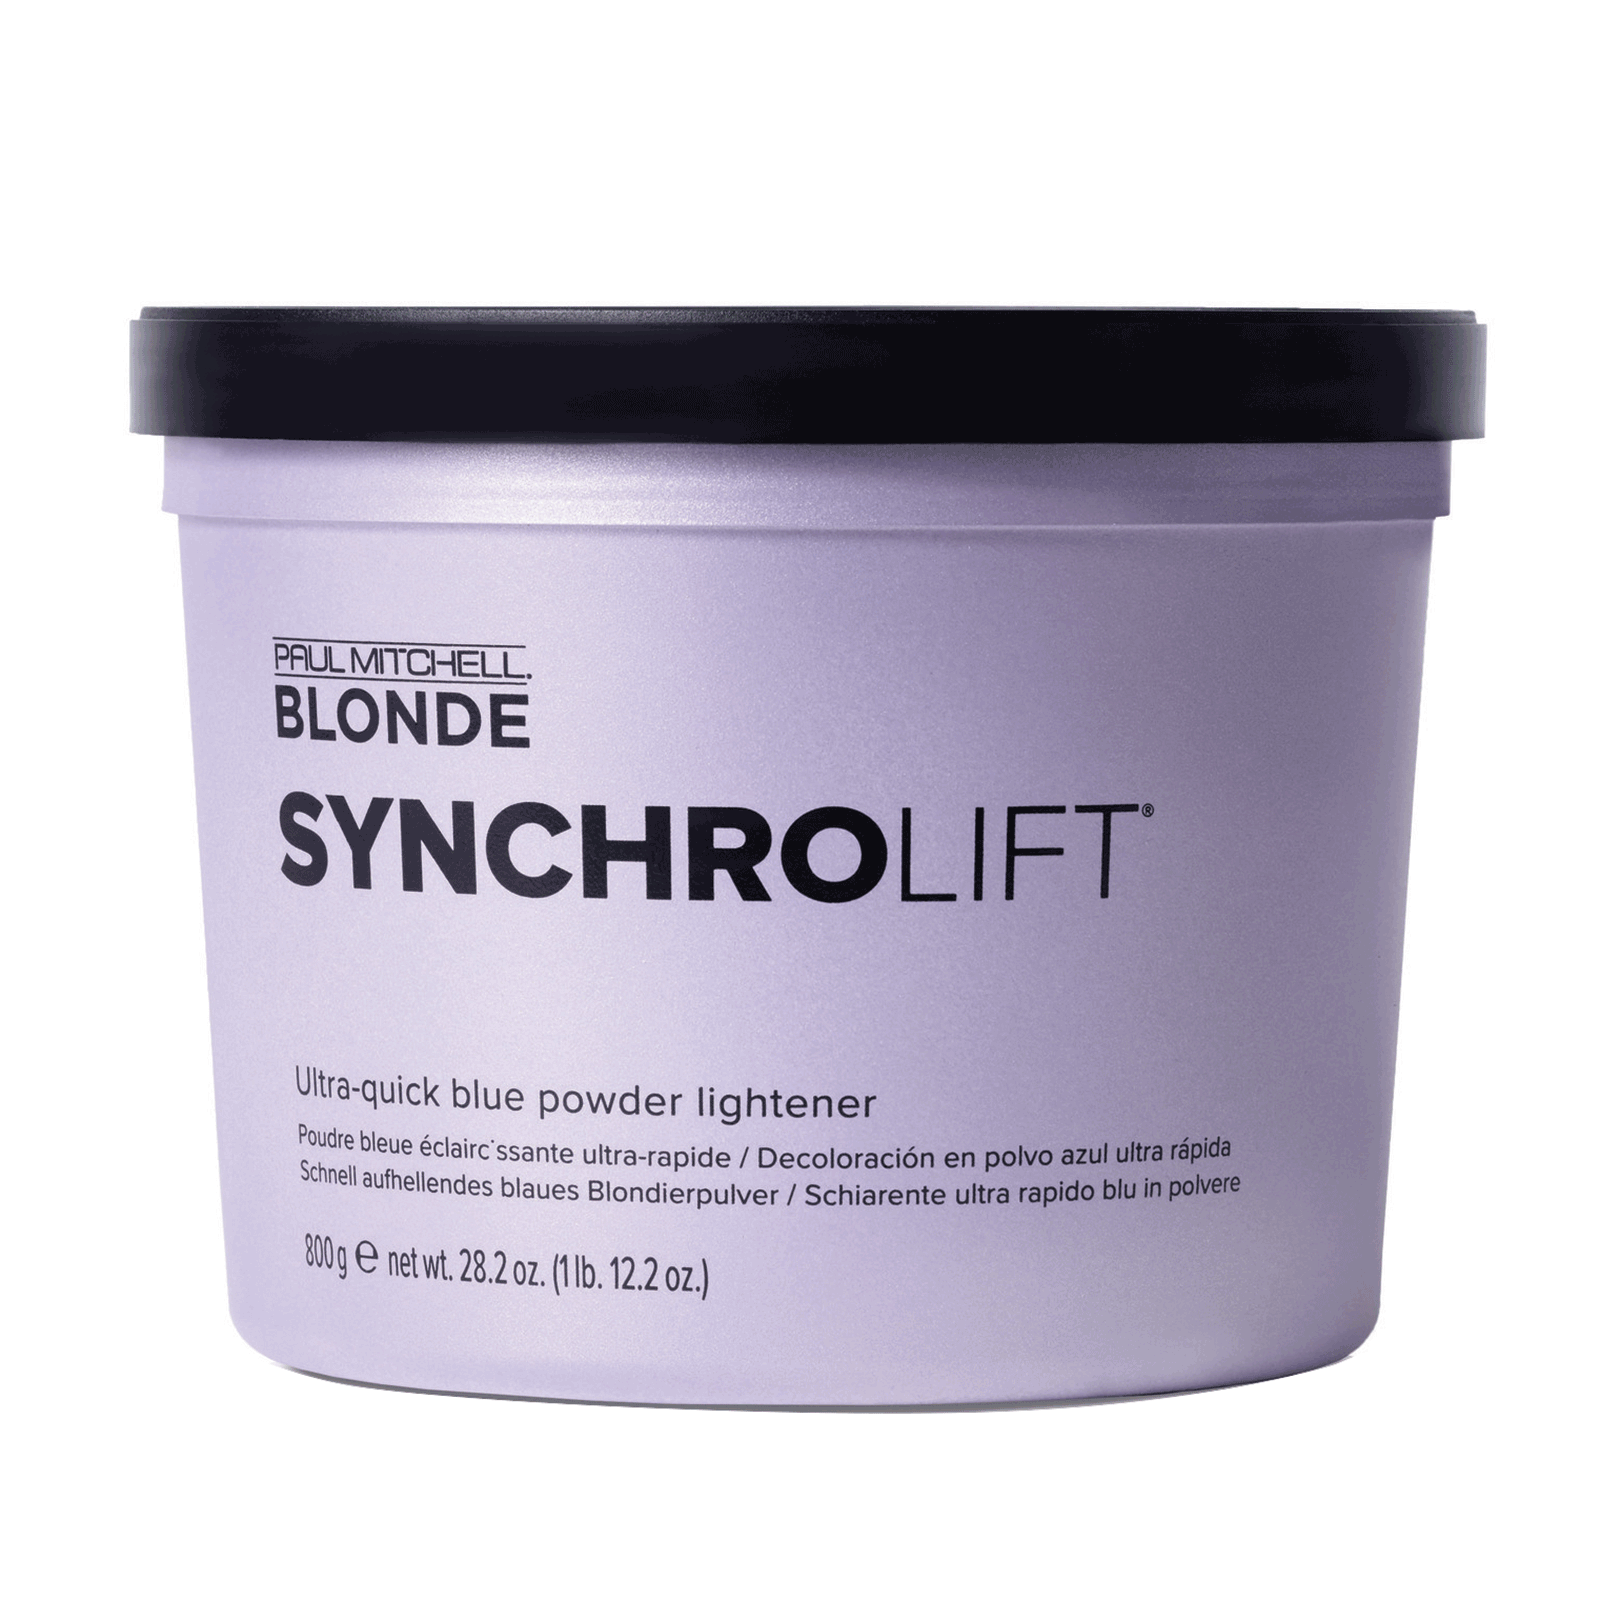 The Blonding System - SynchroLift Lightener